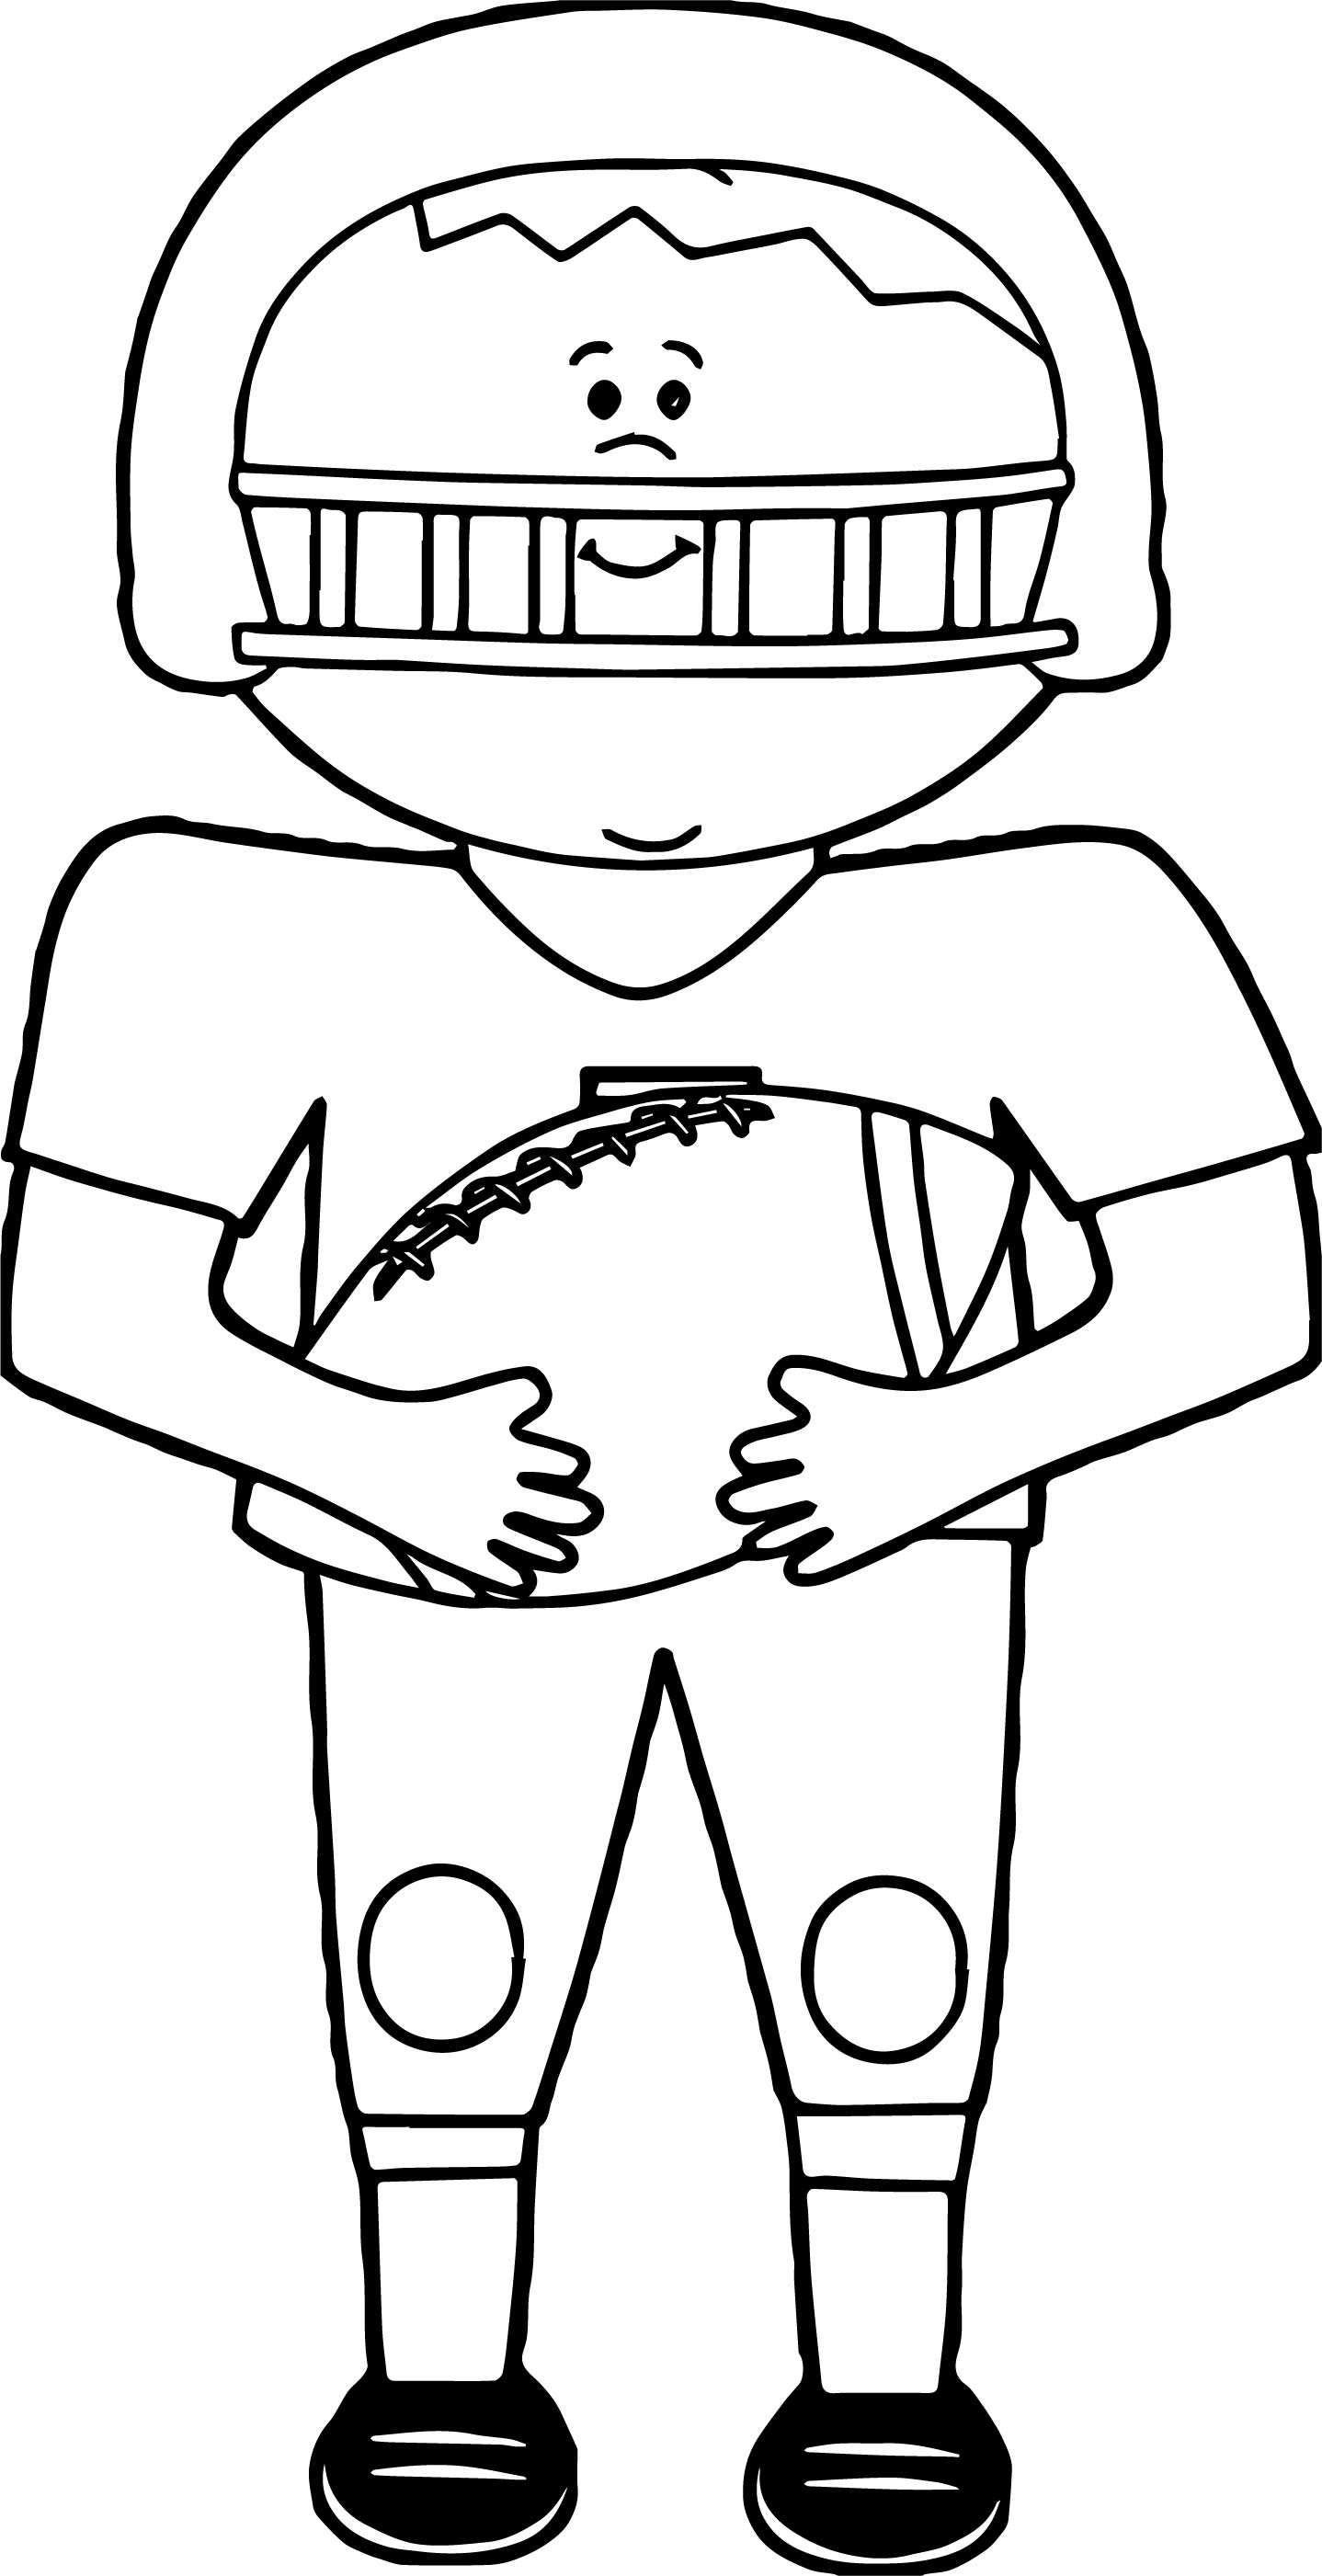 Football Player Playing Catch Ball Coloring Page